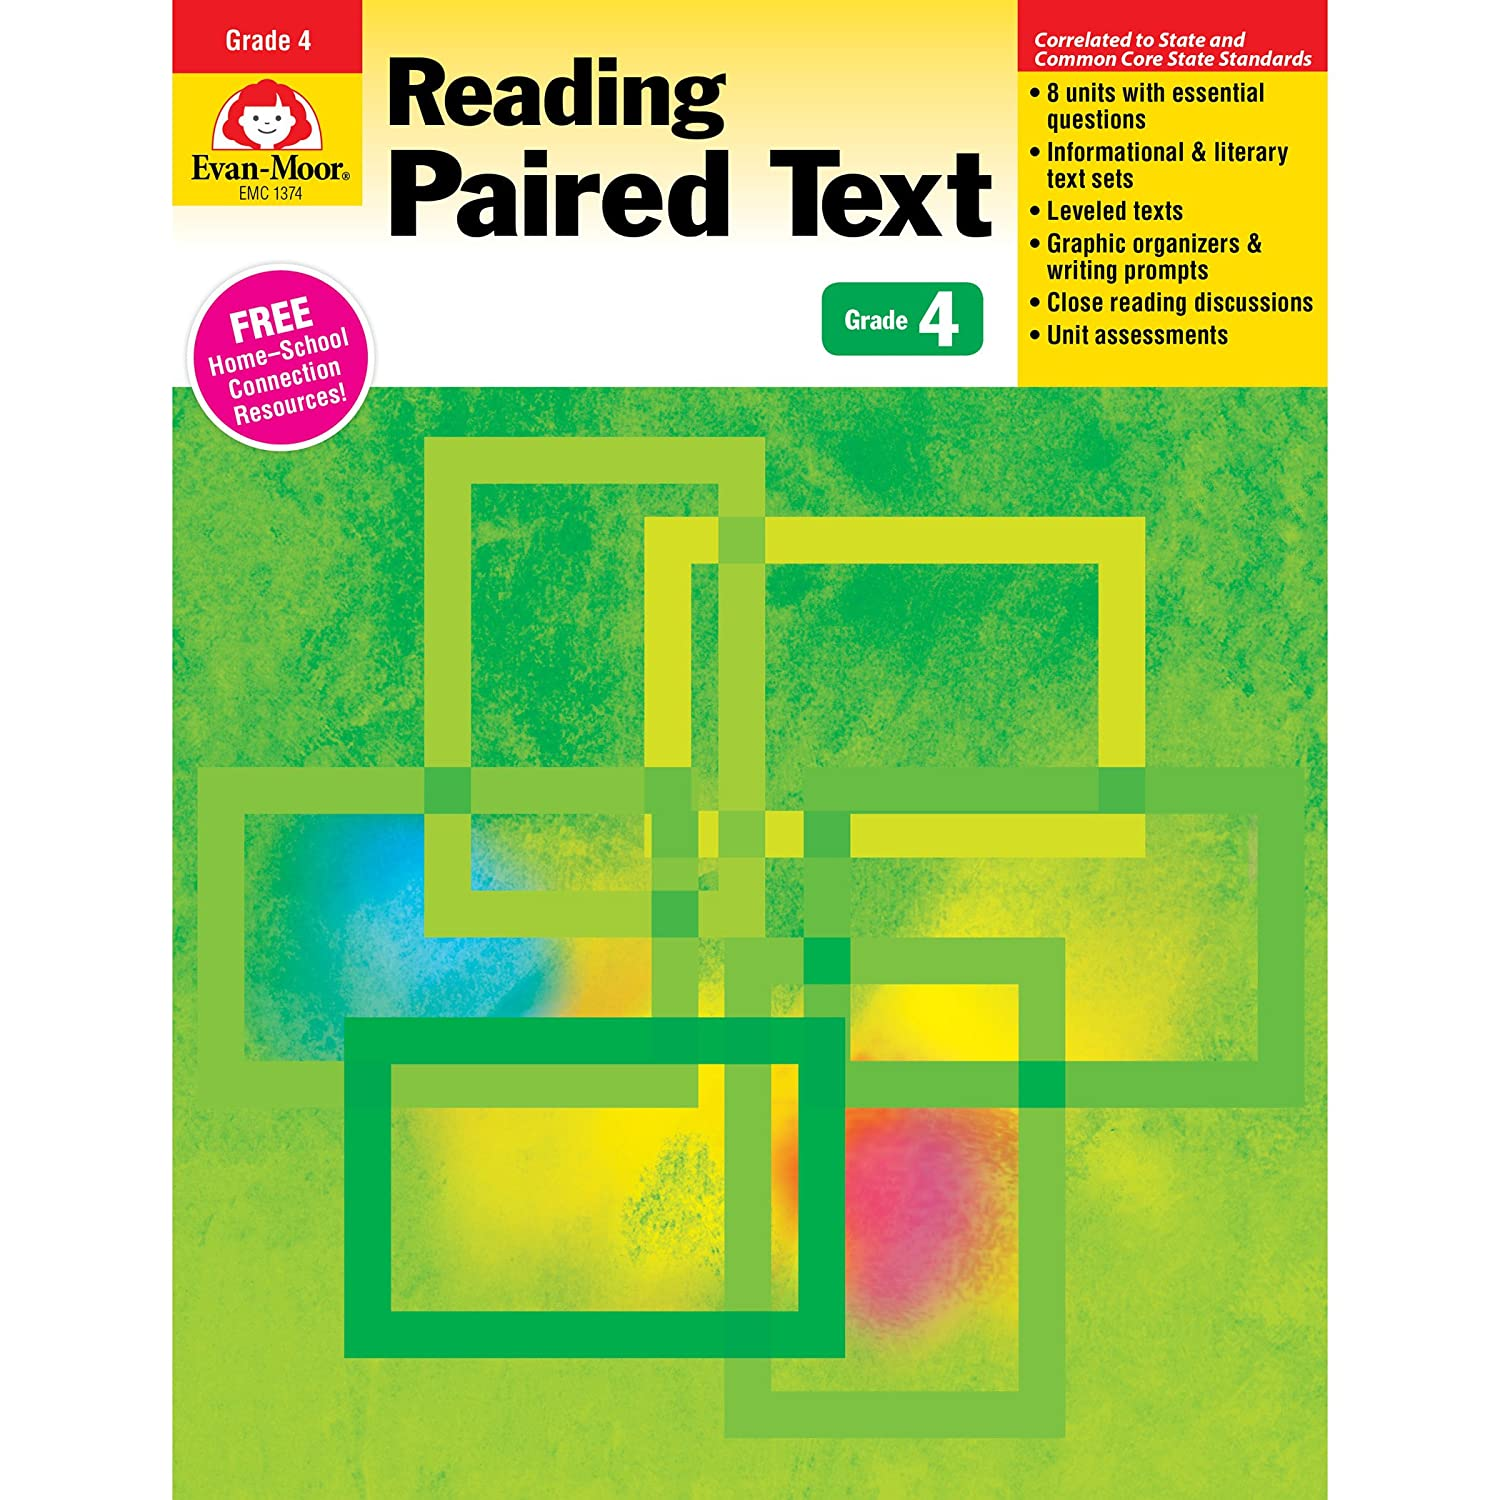 Evan-Moor Reading Paired Text: Common Core Mastery Book, Grade 4